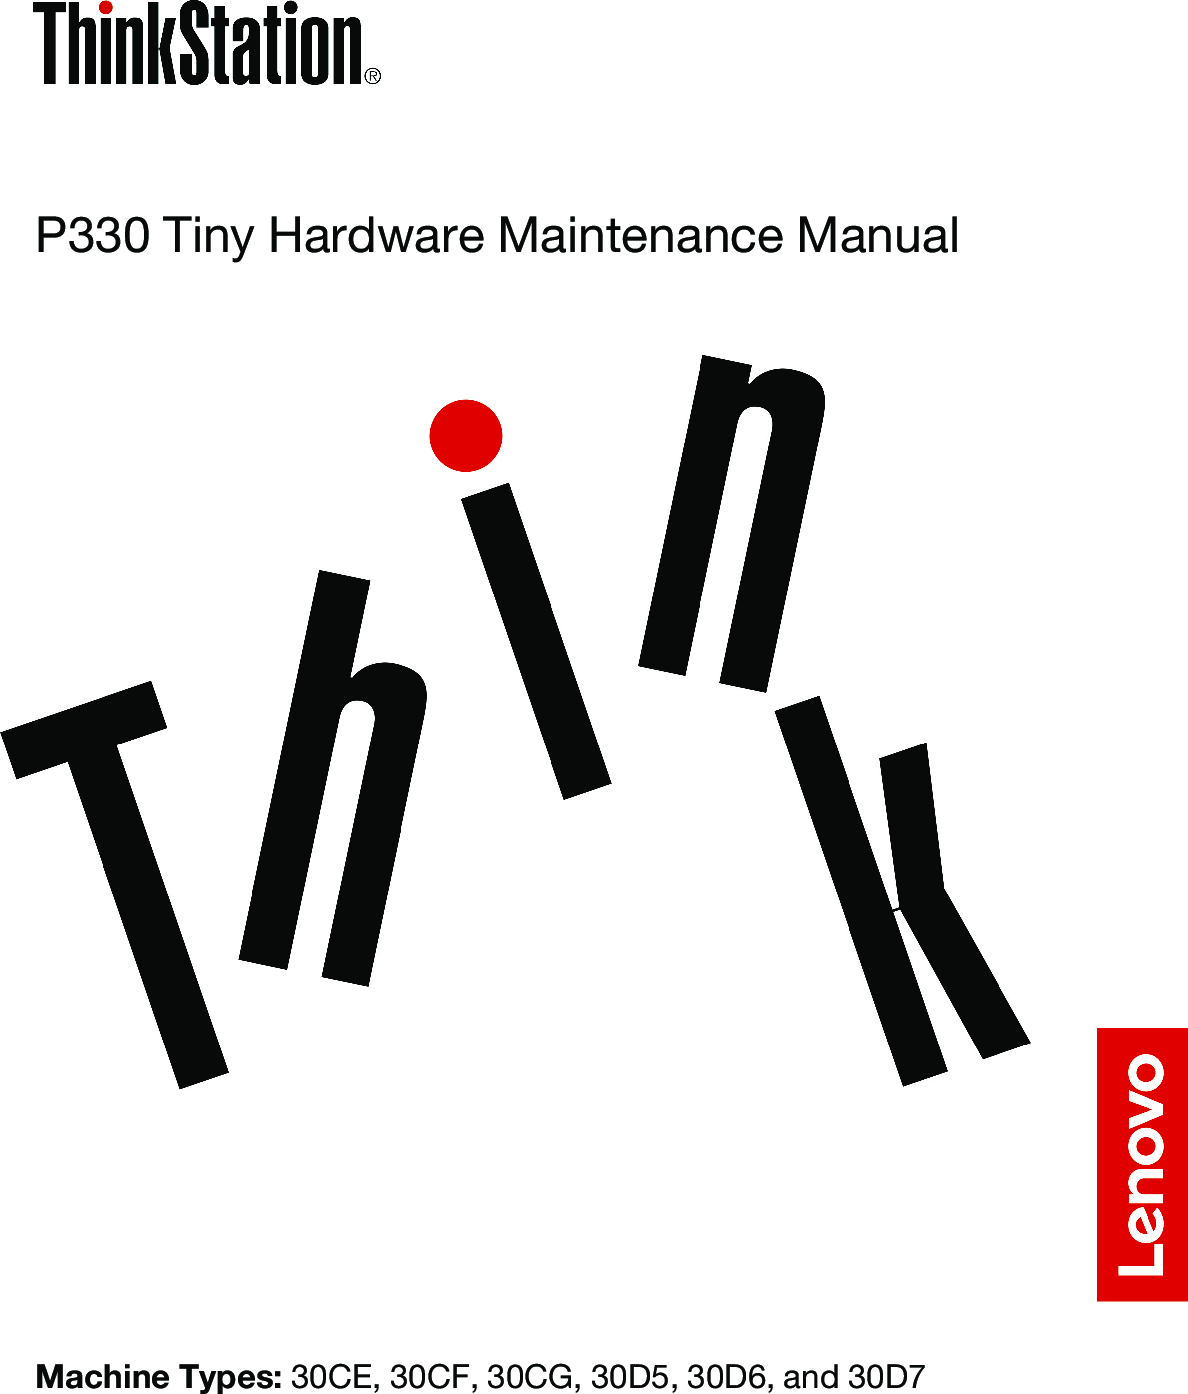 Lenovo P330 Tiny Hardware Maintenance Manual (English